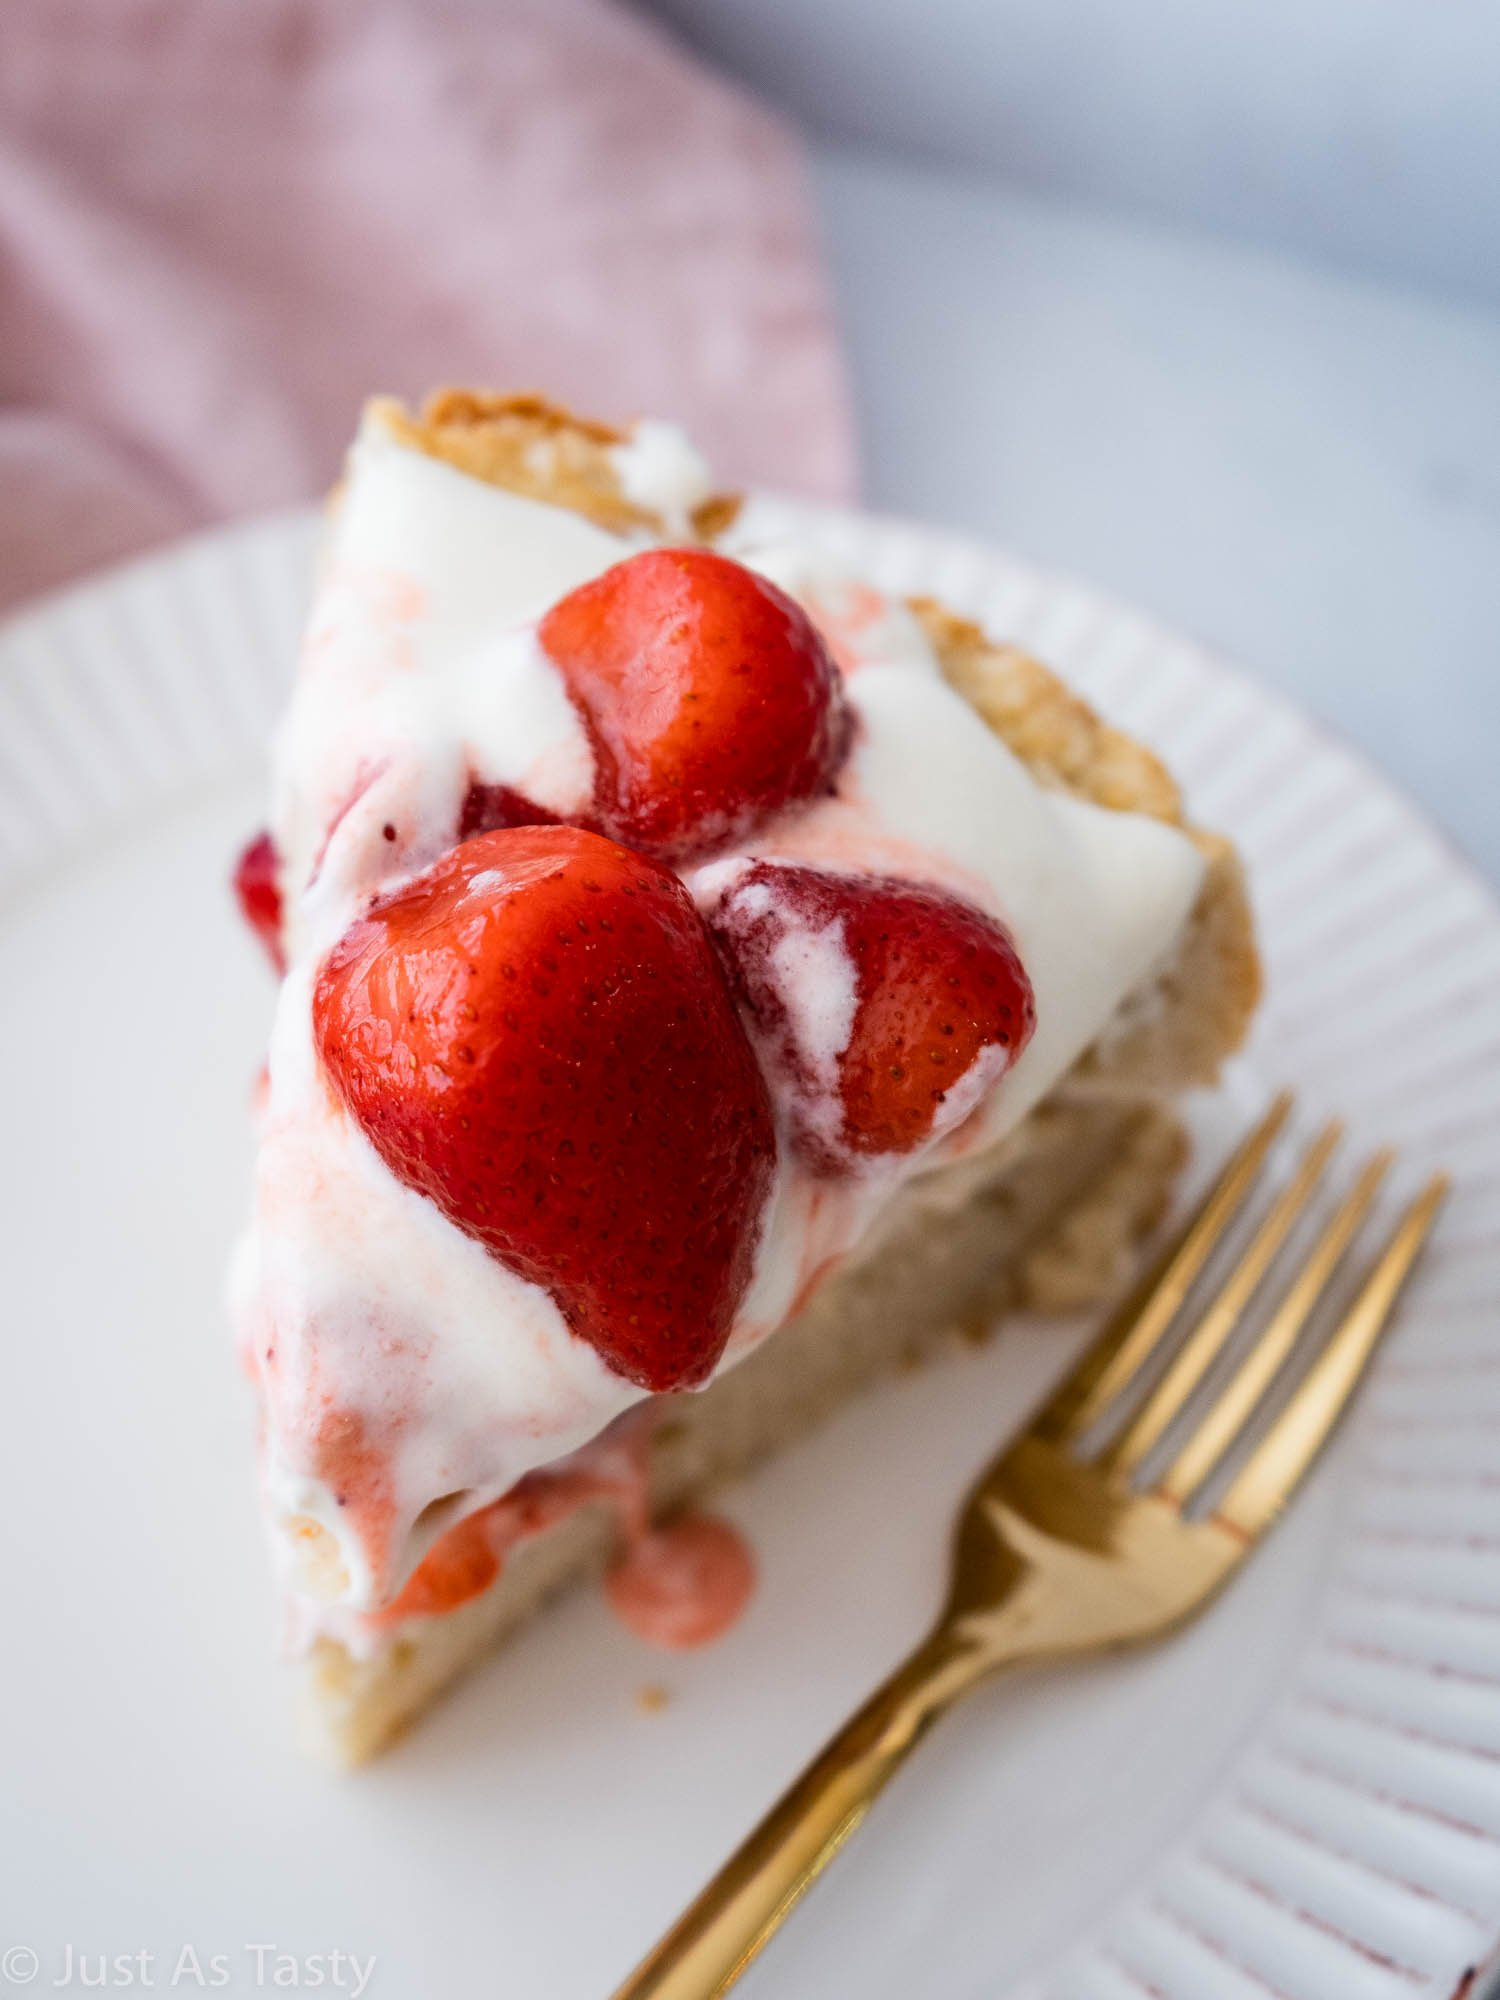 Slice of cake topped with strawberries and whipped cream on a white plate.